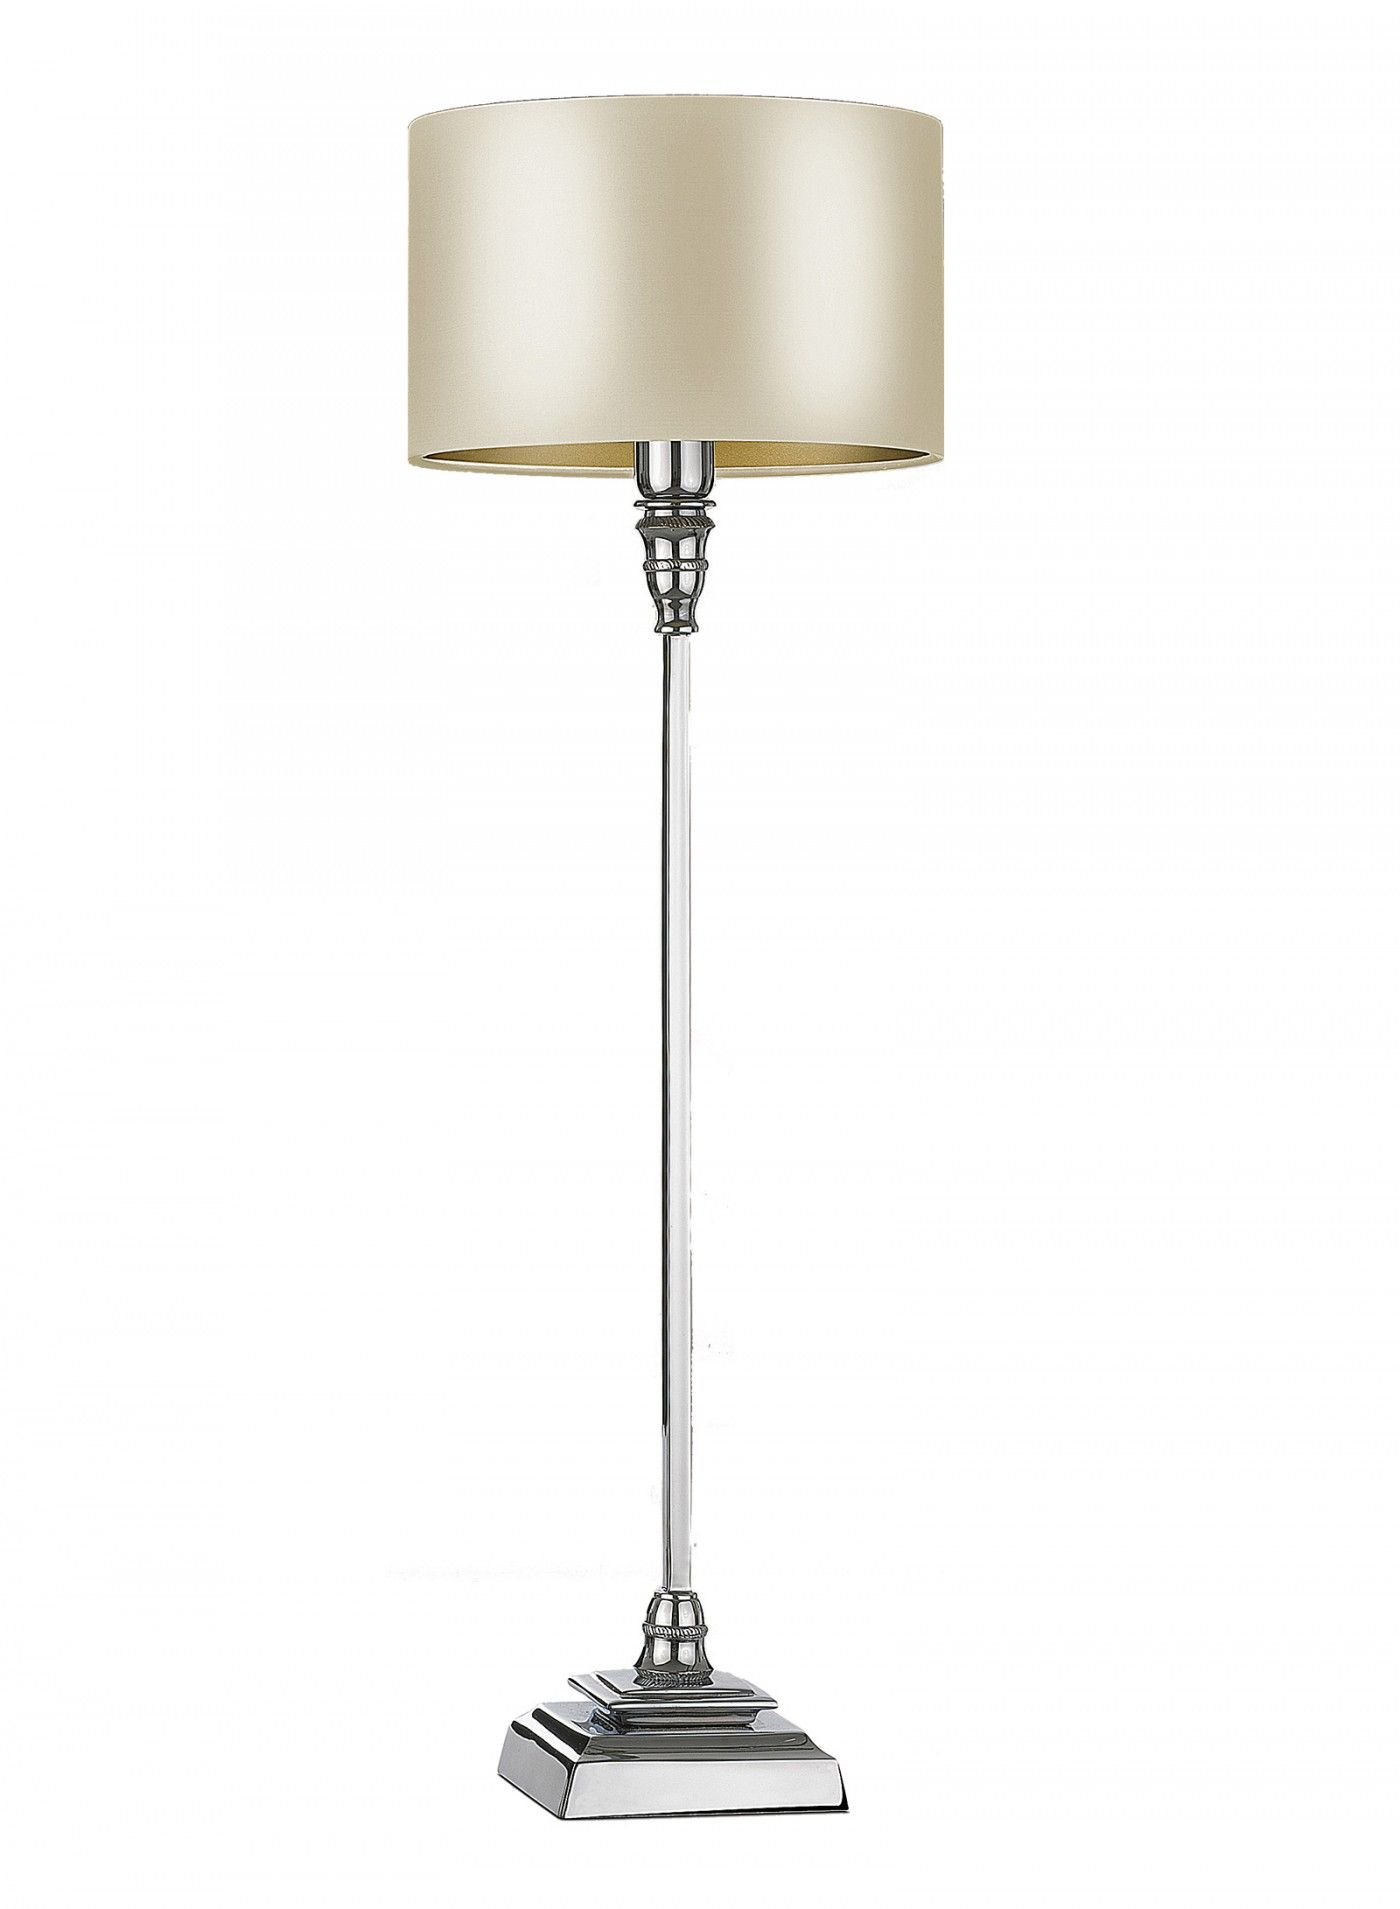 Tall Classical Table Lamps Ideal For Consoles And Other Narrow Spaces. Cast  In Brass And Chrome Plated.